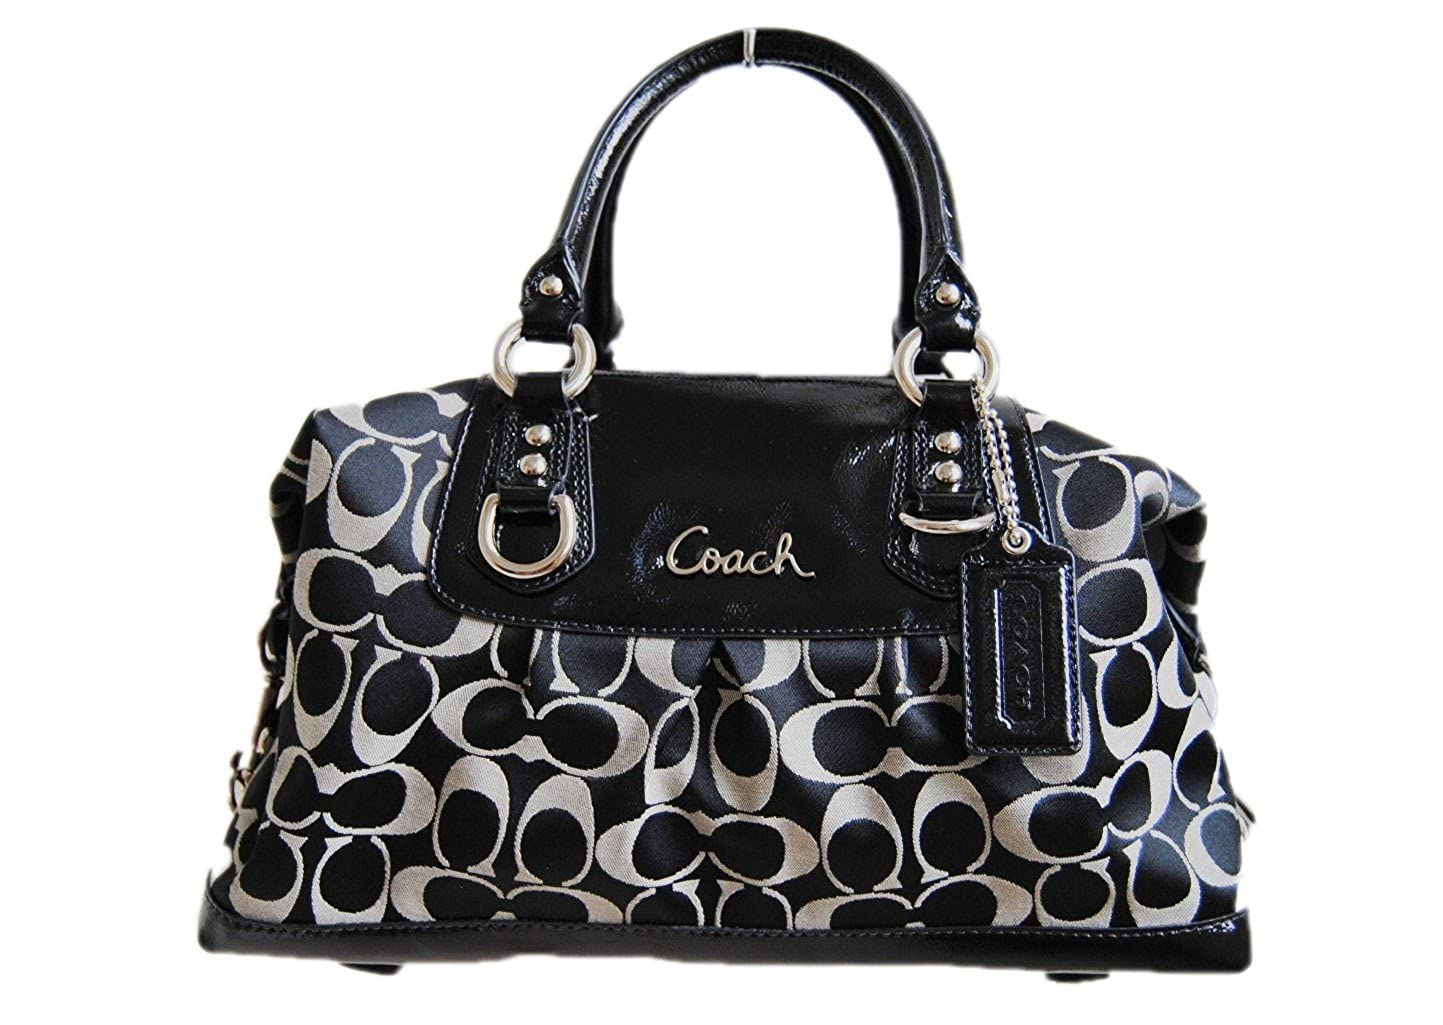 4853809d5ebc Amazon.com  Coach Ashley Signature Sateen Satchel Coach Purse – Black  F15443 SLCBK SV Black Grey Black  Shoes